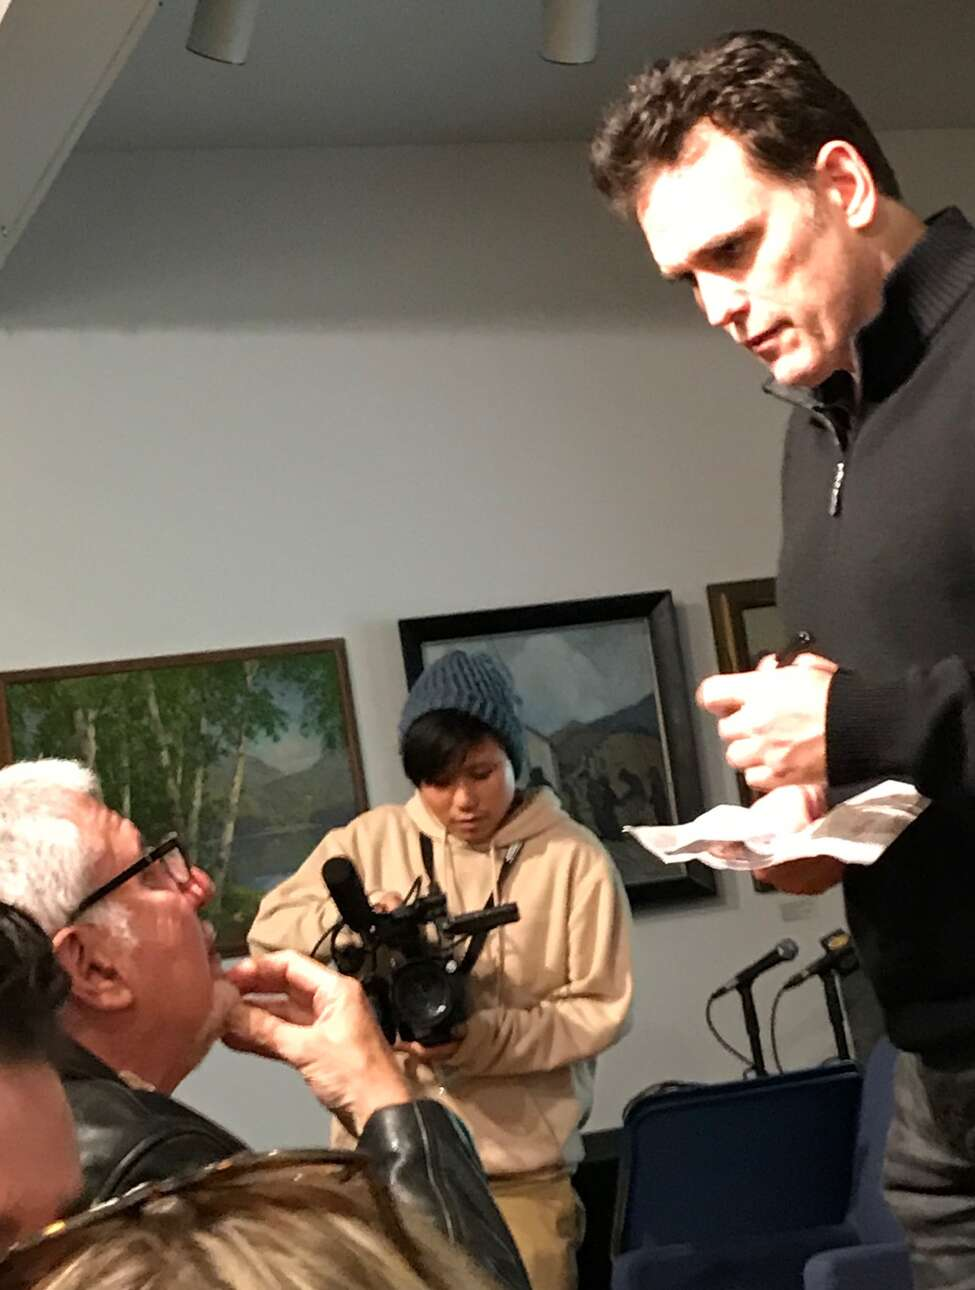 Matt Dillon signs an autograph for a fan at the Woodstock Film Festival on Oct. 5.